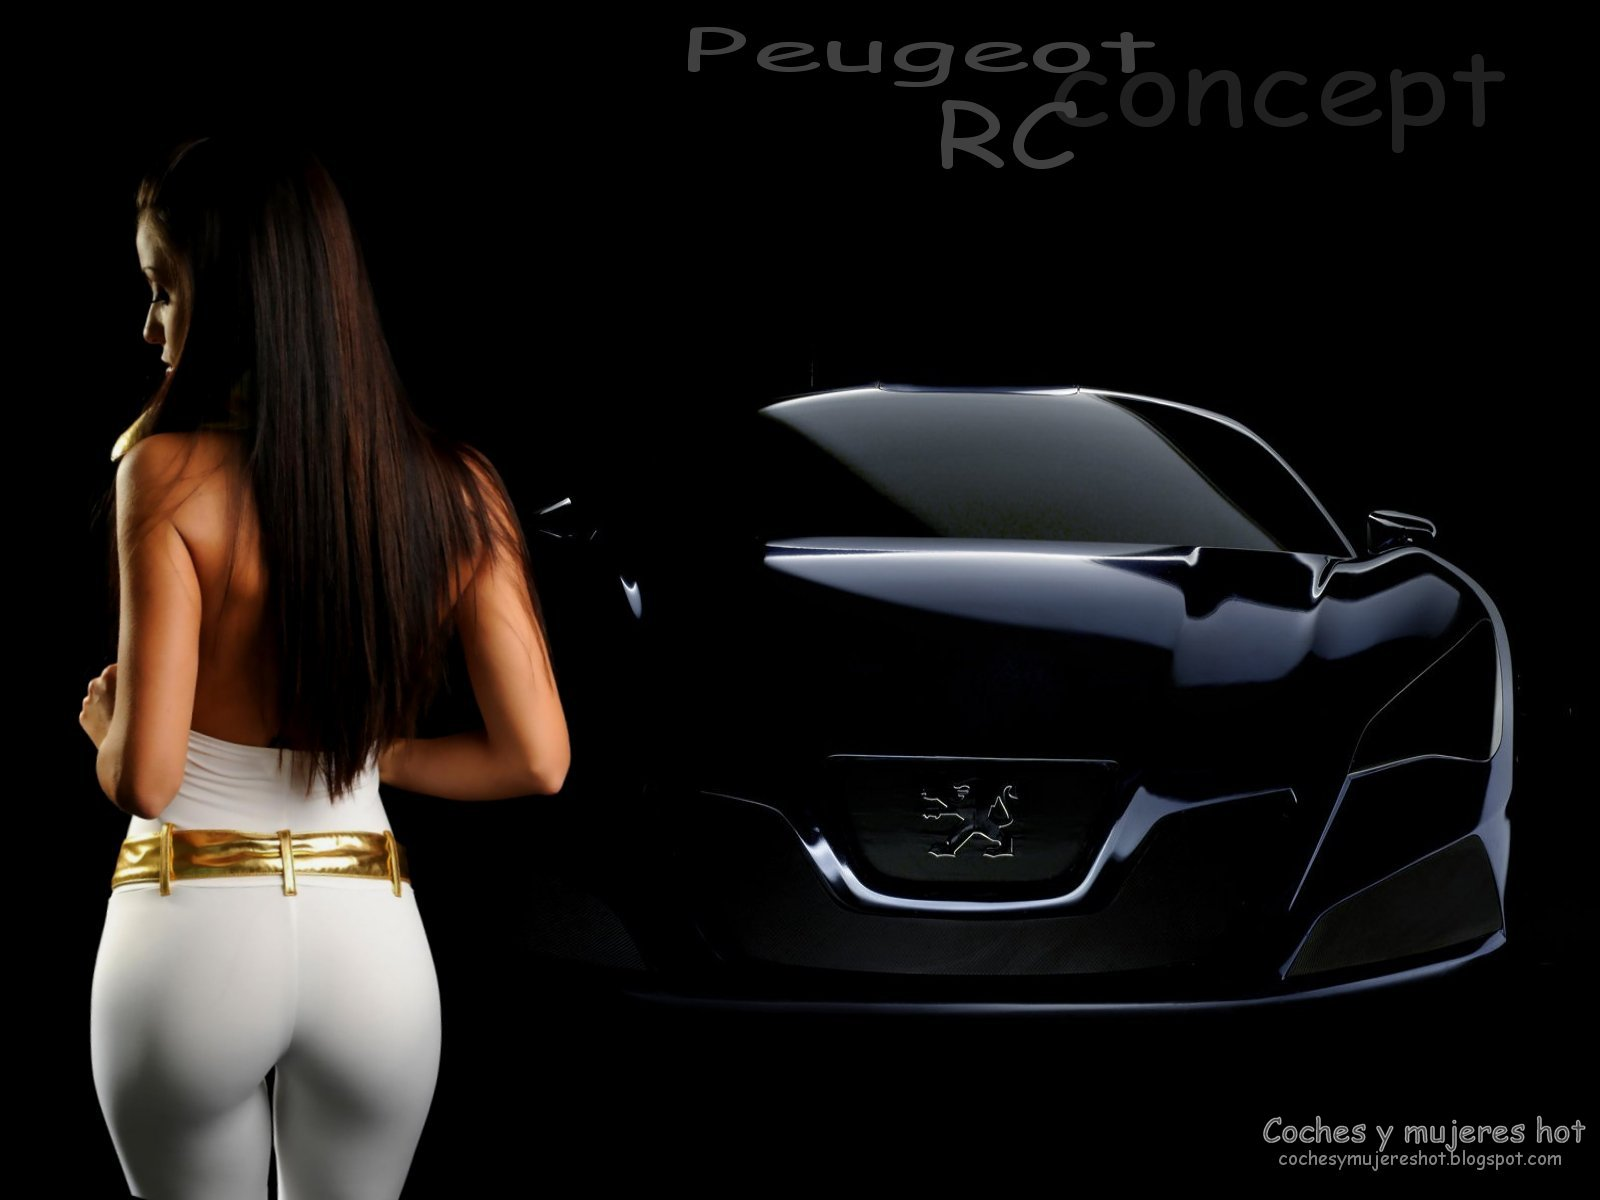 peugeot rc concept latina car